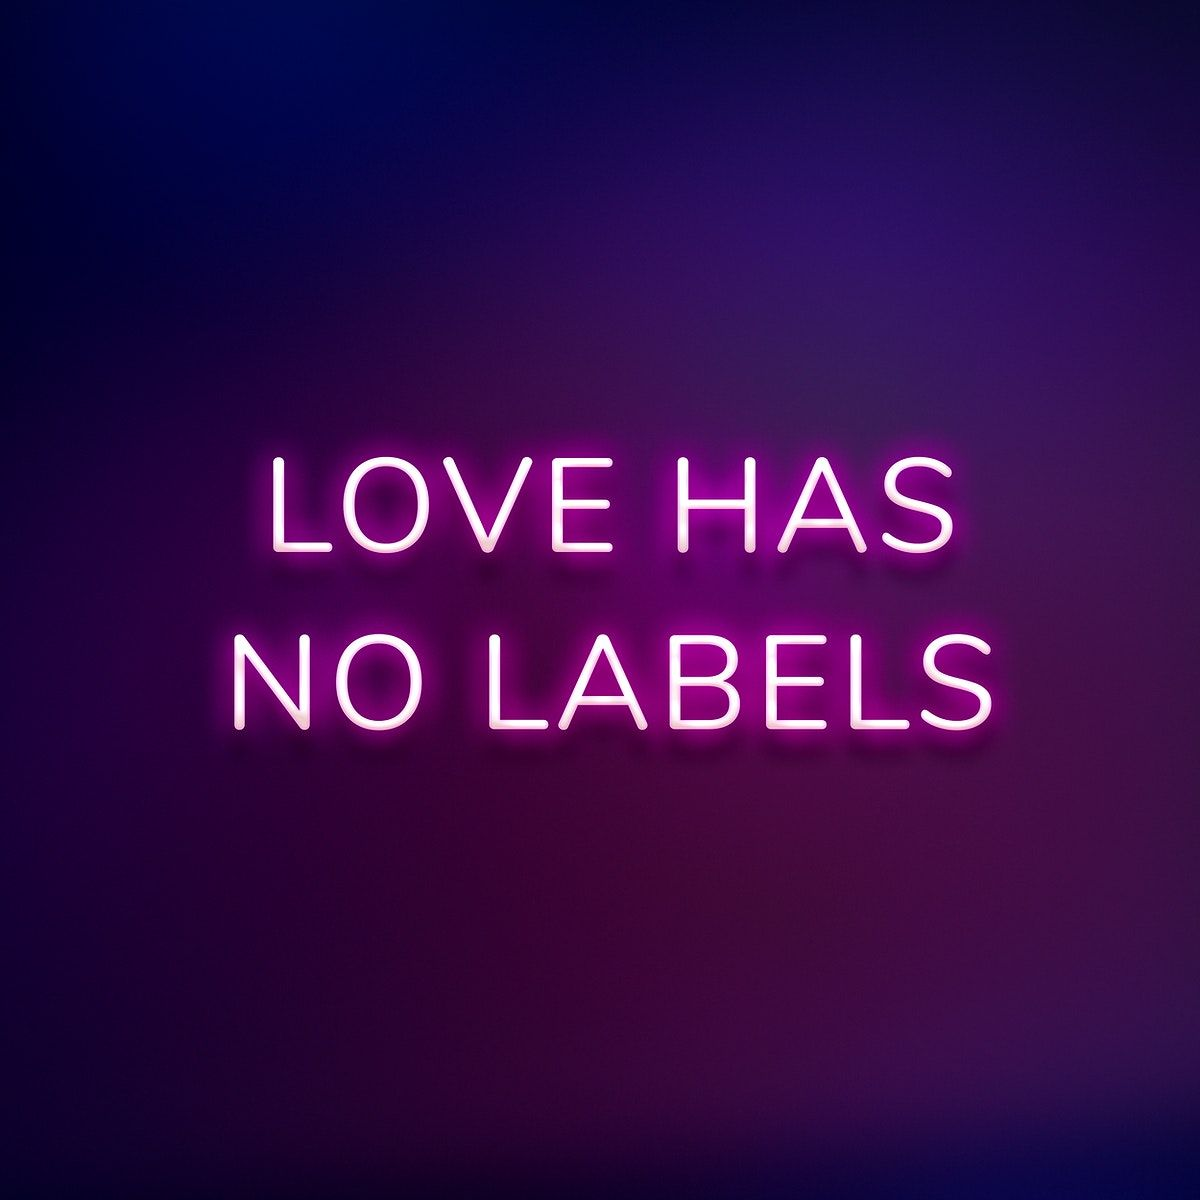 Love Has No Labels Neon Quote Typography On A Purple Background Free Image By Rawpixel Com Nunny In 2020 Neon Quotes Love Has No Labels Neon Words